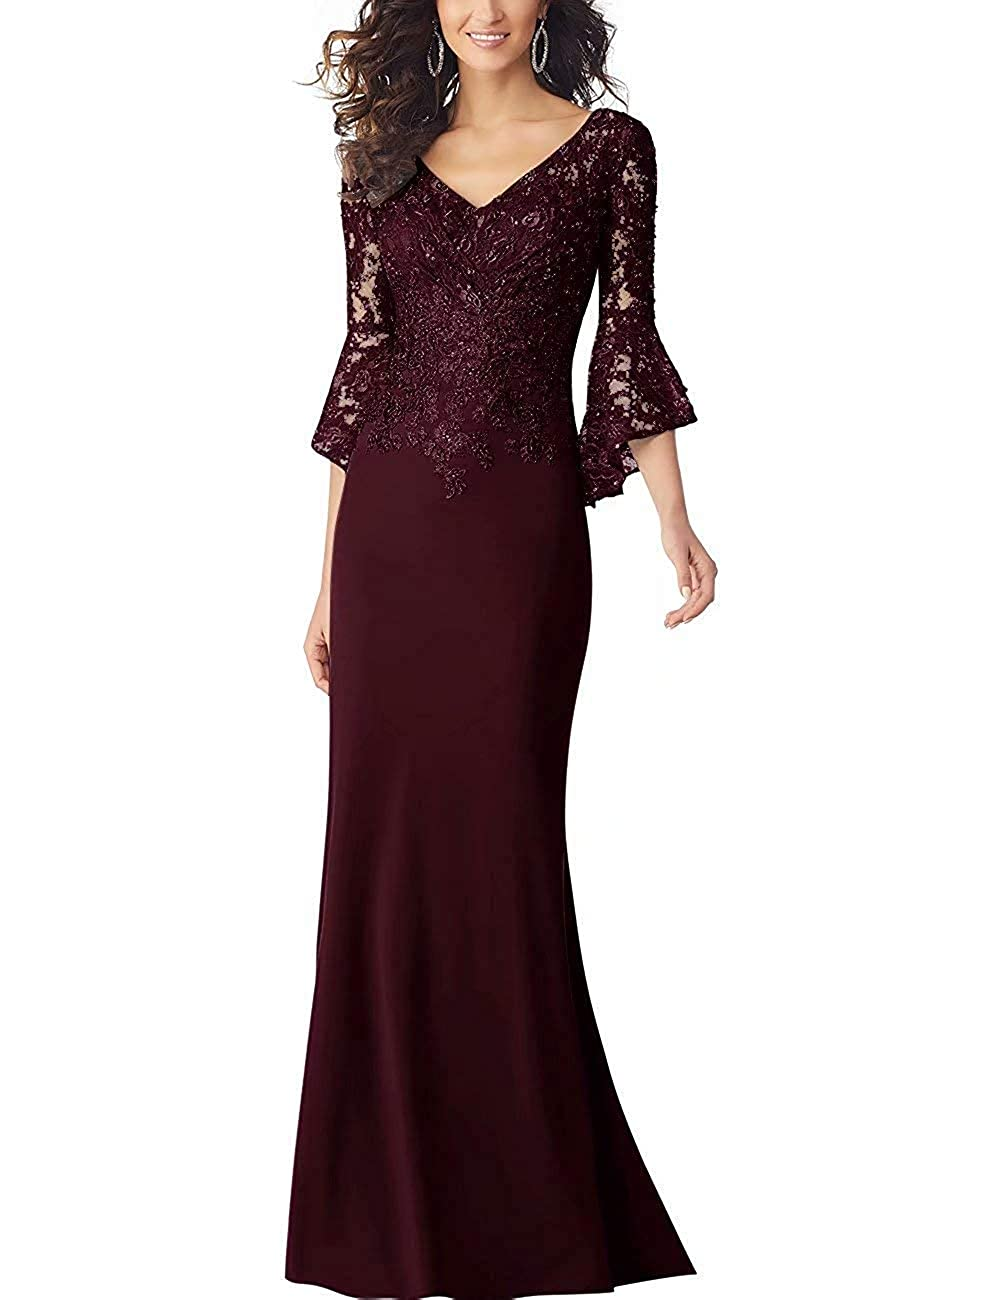 Burgundy PearlBridal Women's Bodycon Mermaid Mother of The Bride Dresses Lace Ruffle Sleeves Long Evening Party Gown